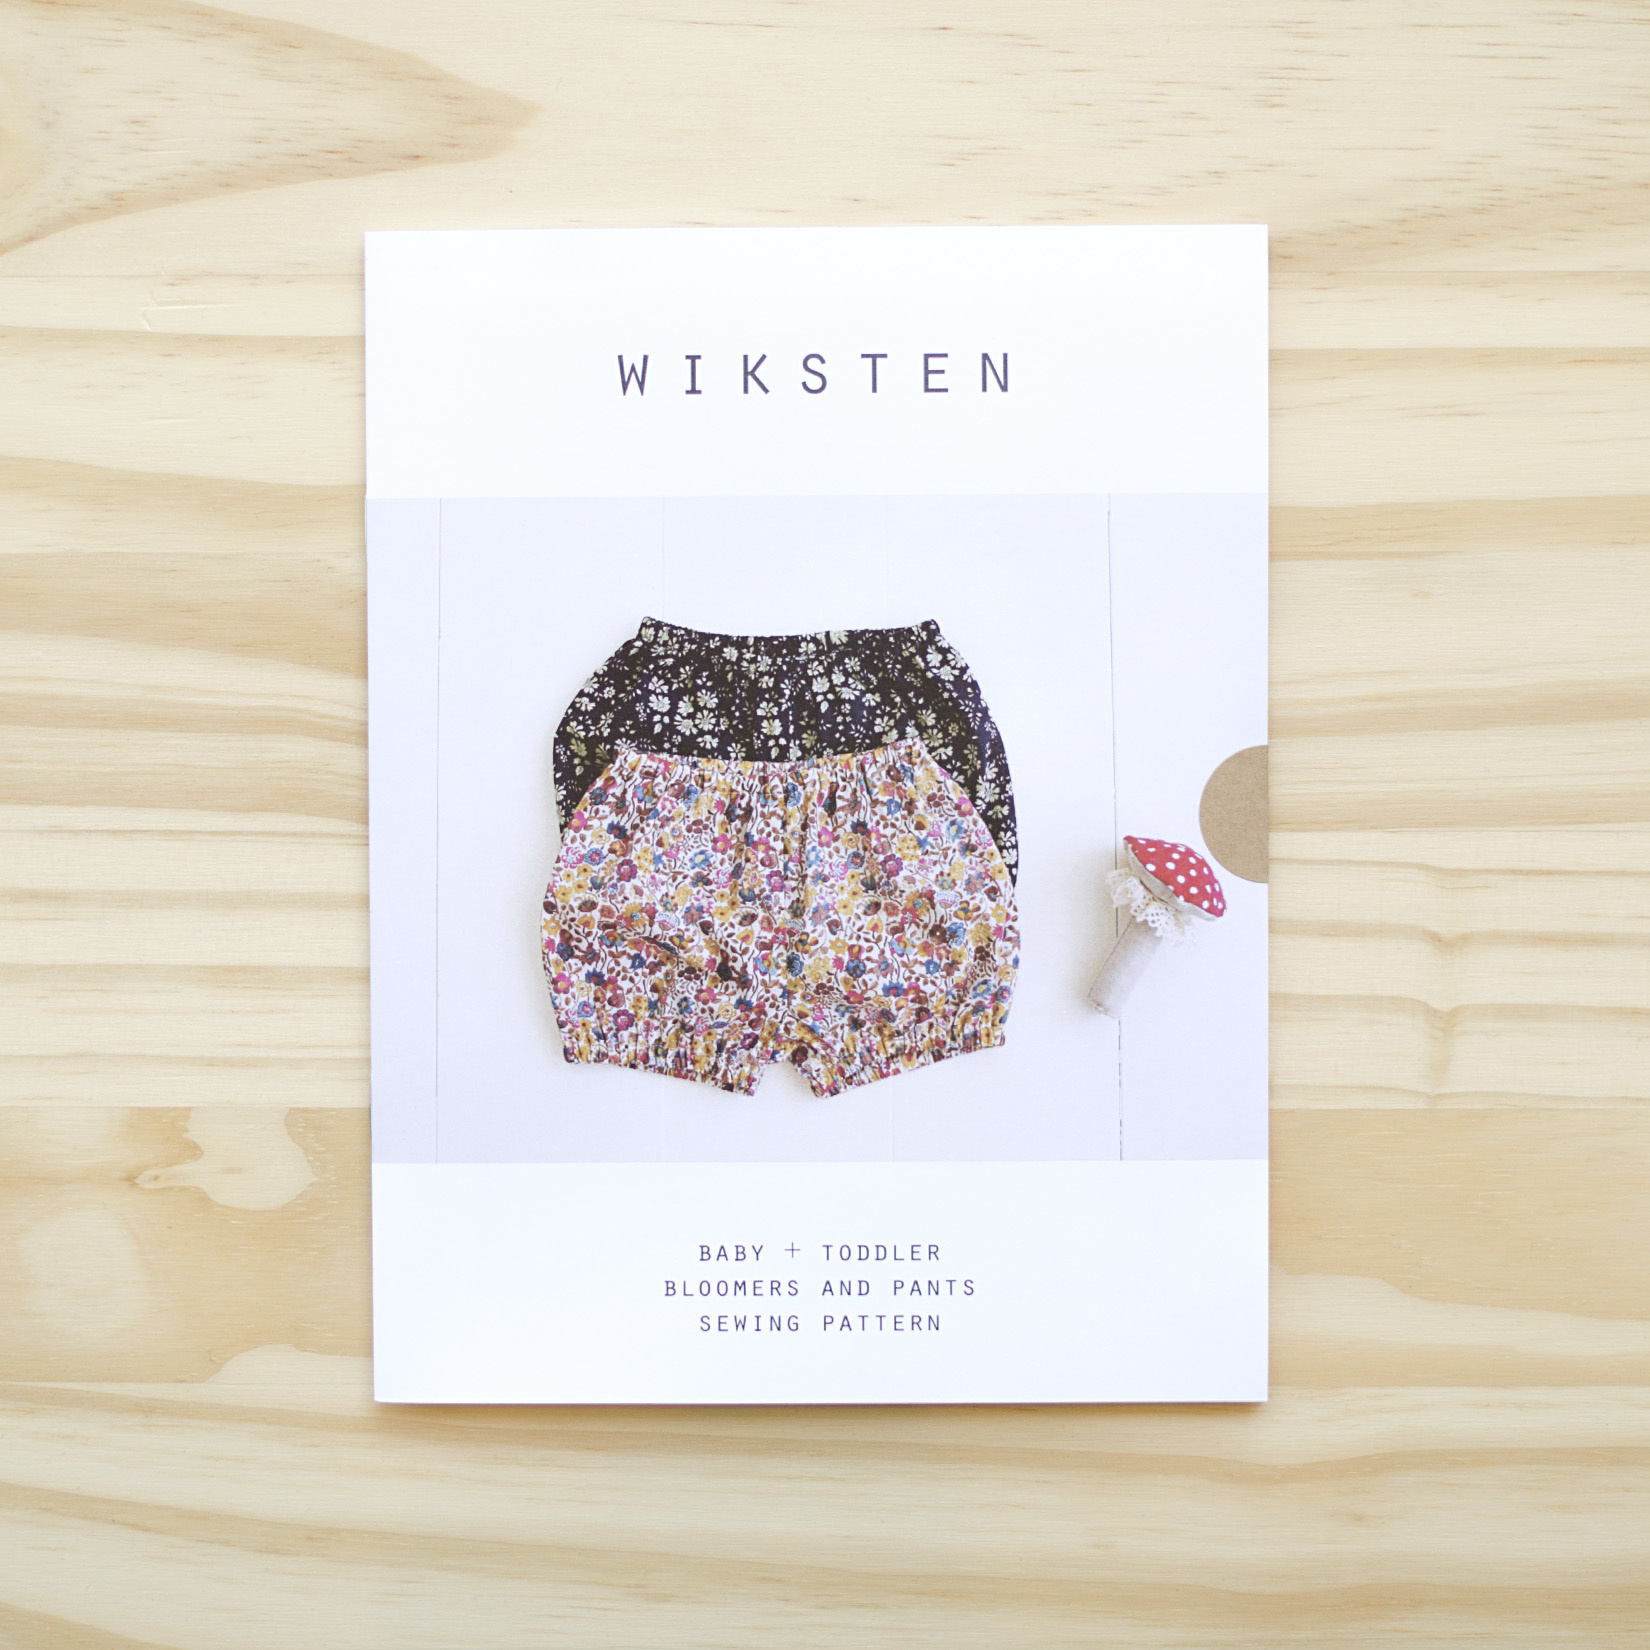 Wiksten : Sewing Pattern : Baby and Toddler Bloomers + Pants